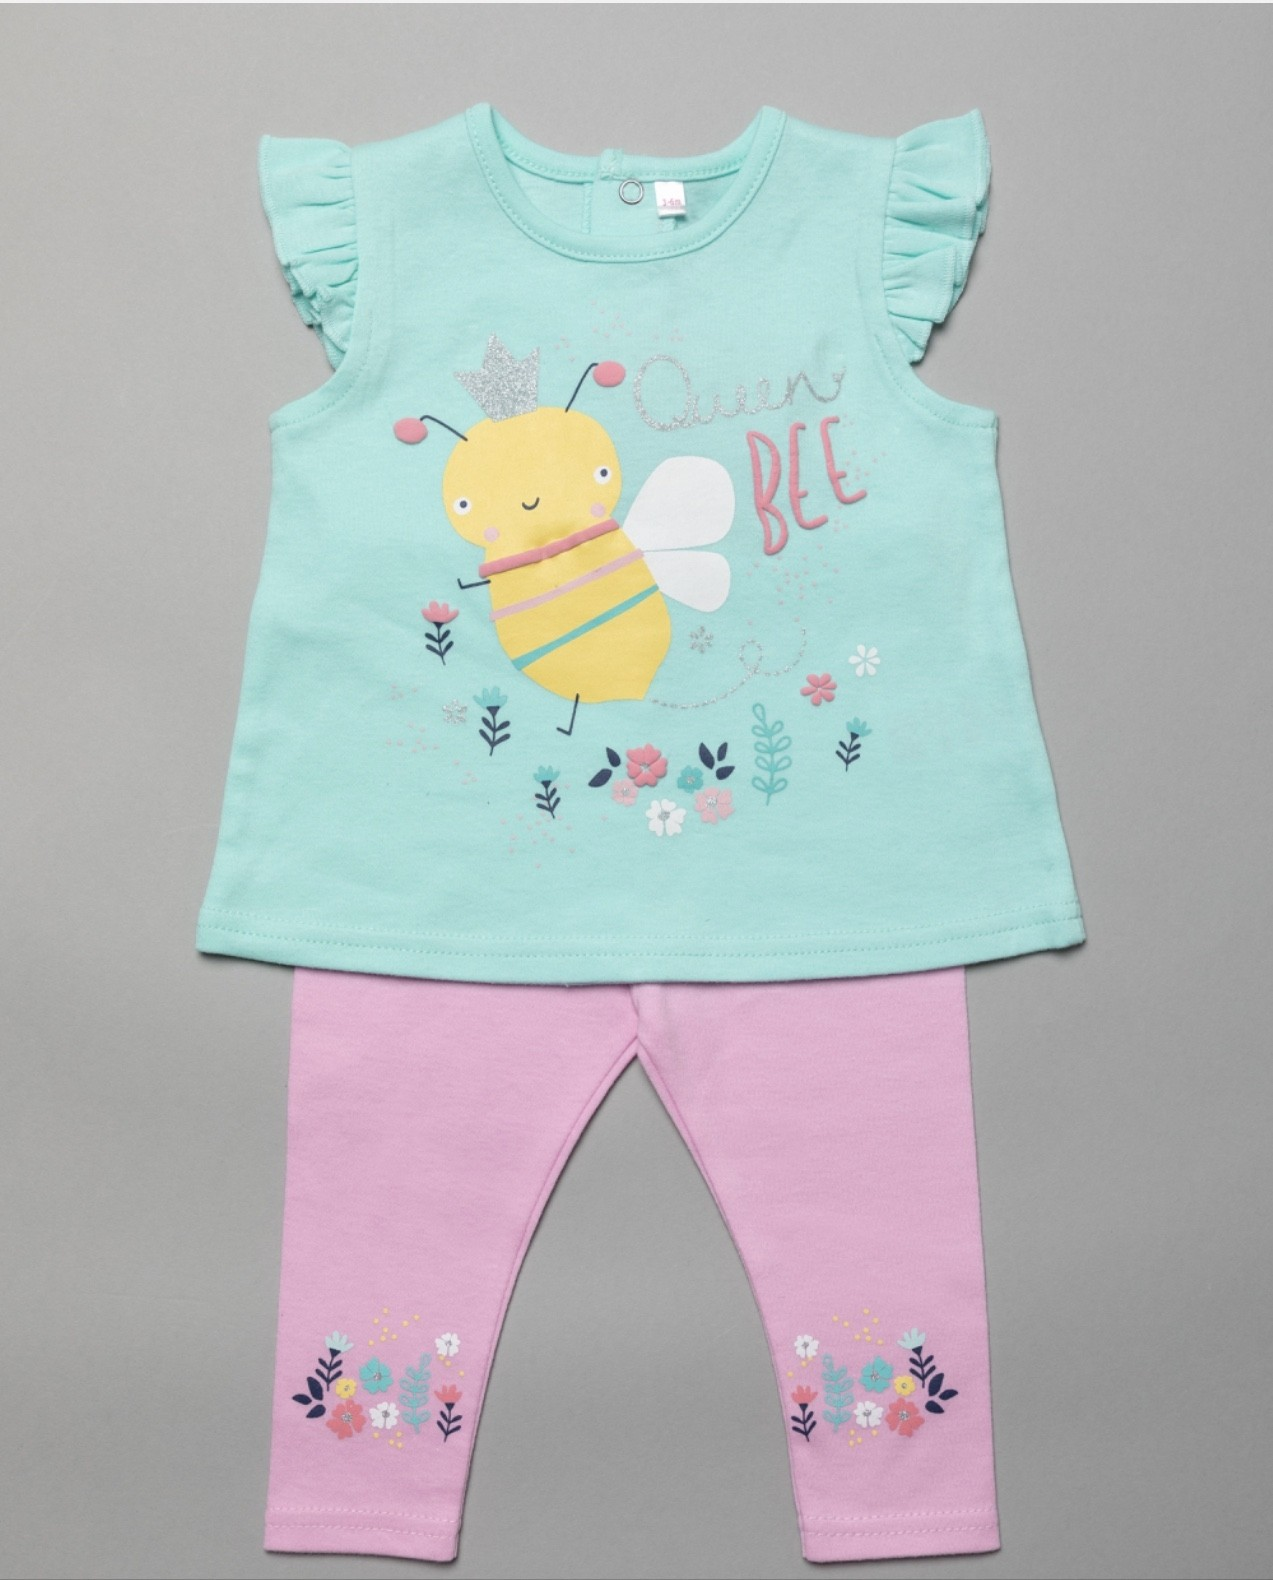 Lily & Jack 'Queen Bee' Baby Girls Set  PACK OF 4